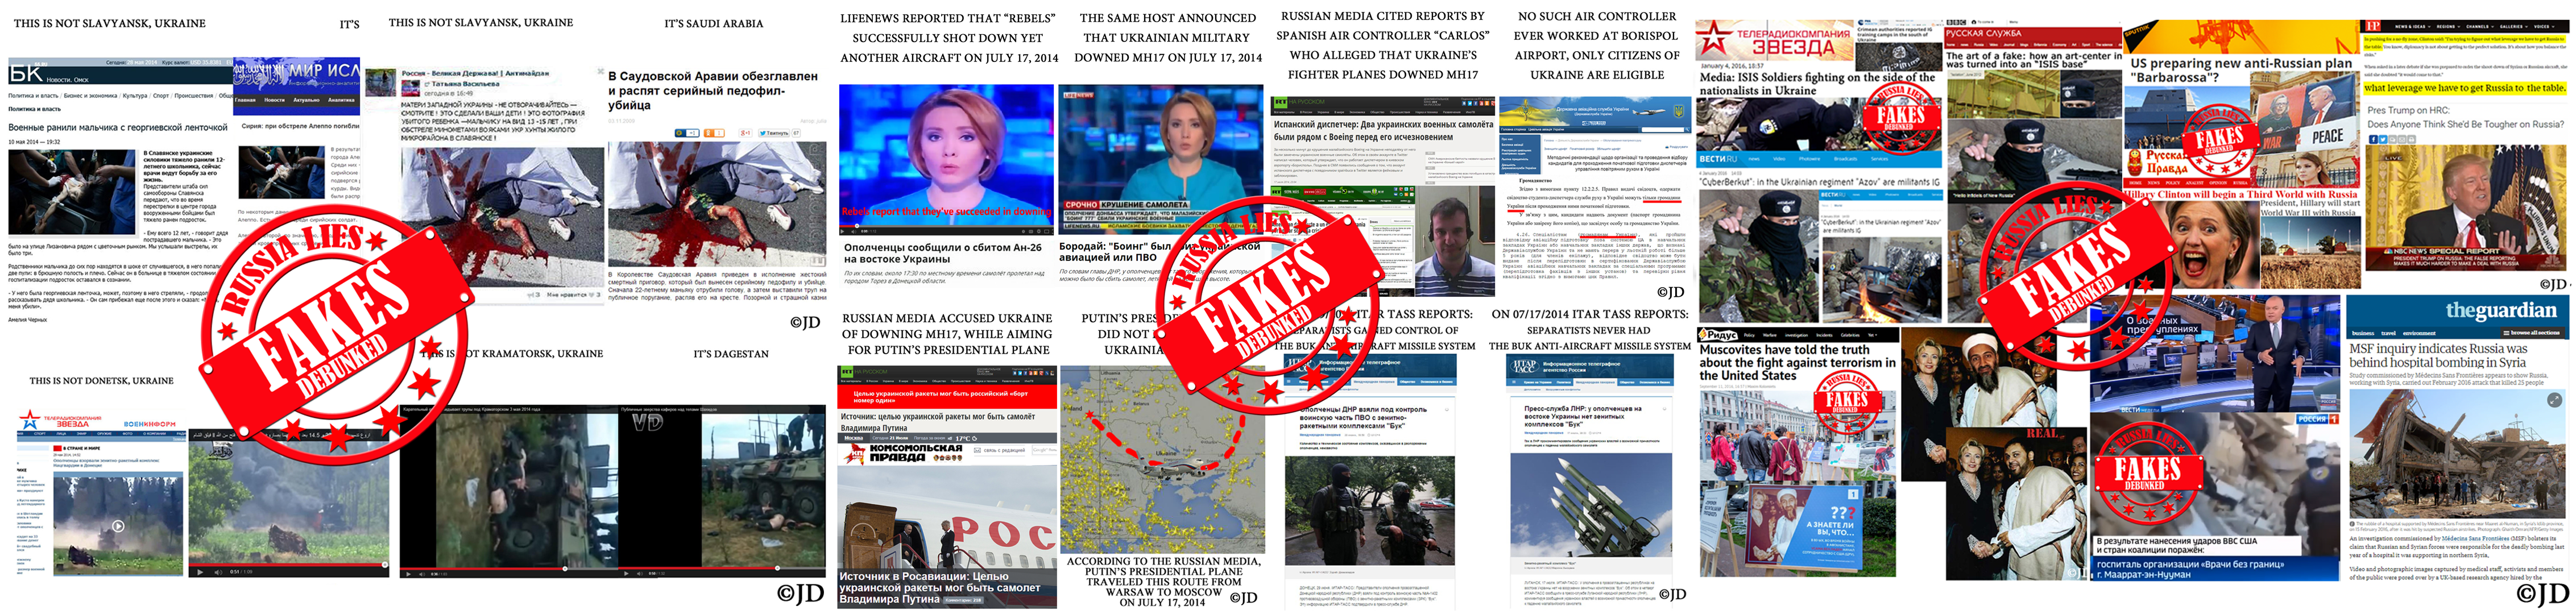 RUSSIA LIES COMPILATION BACKGROUND PIC 3